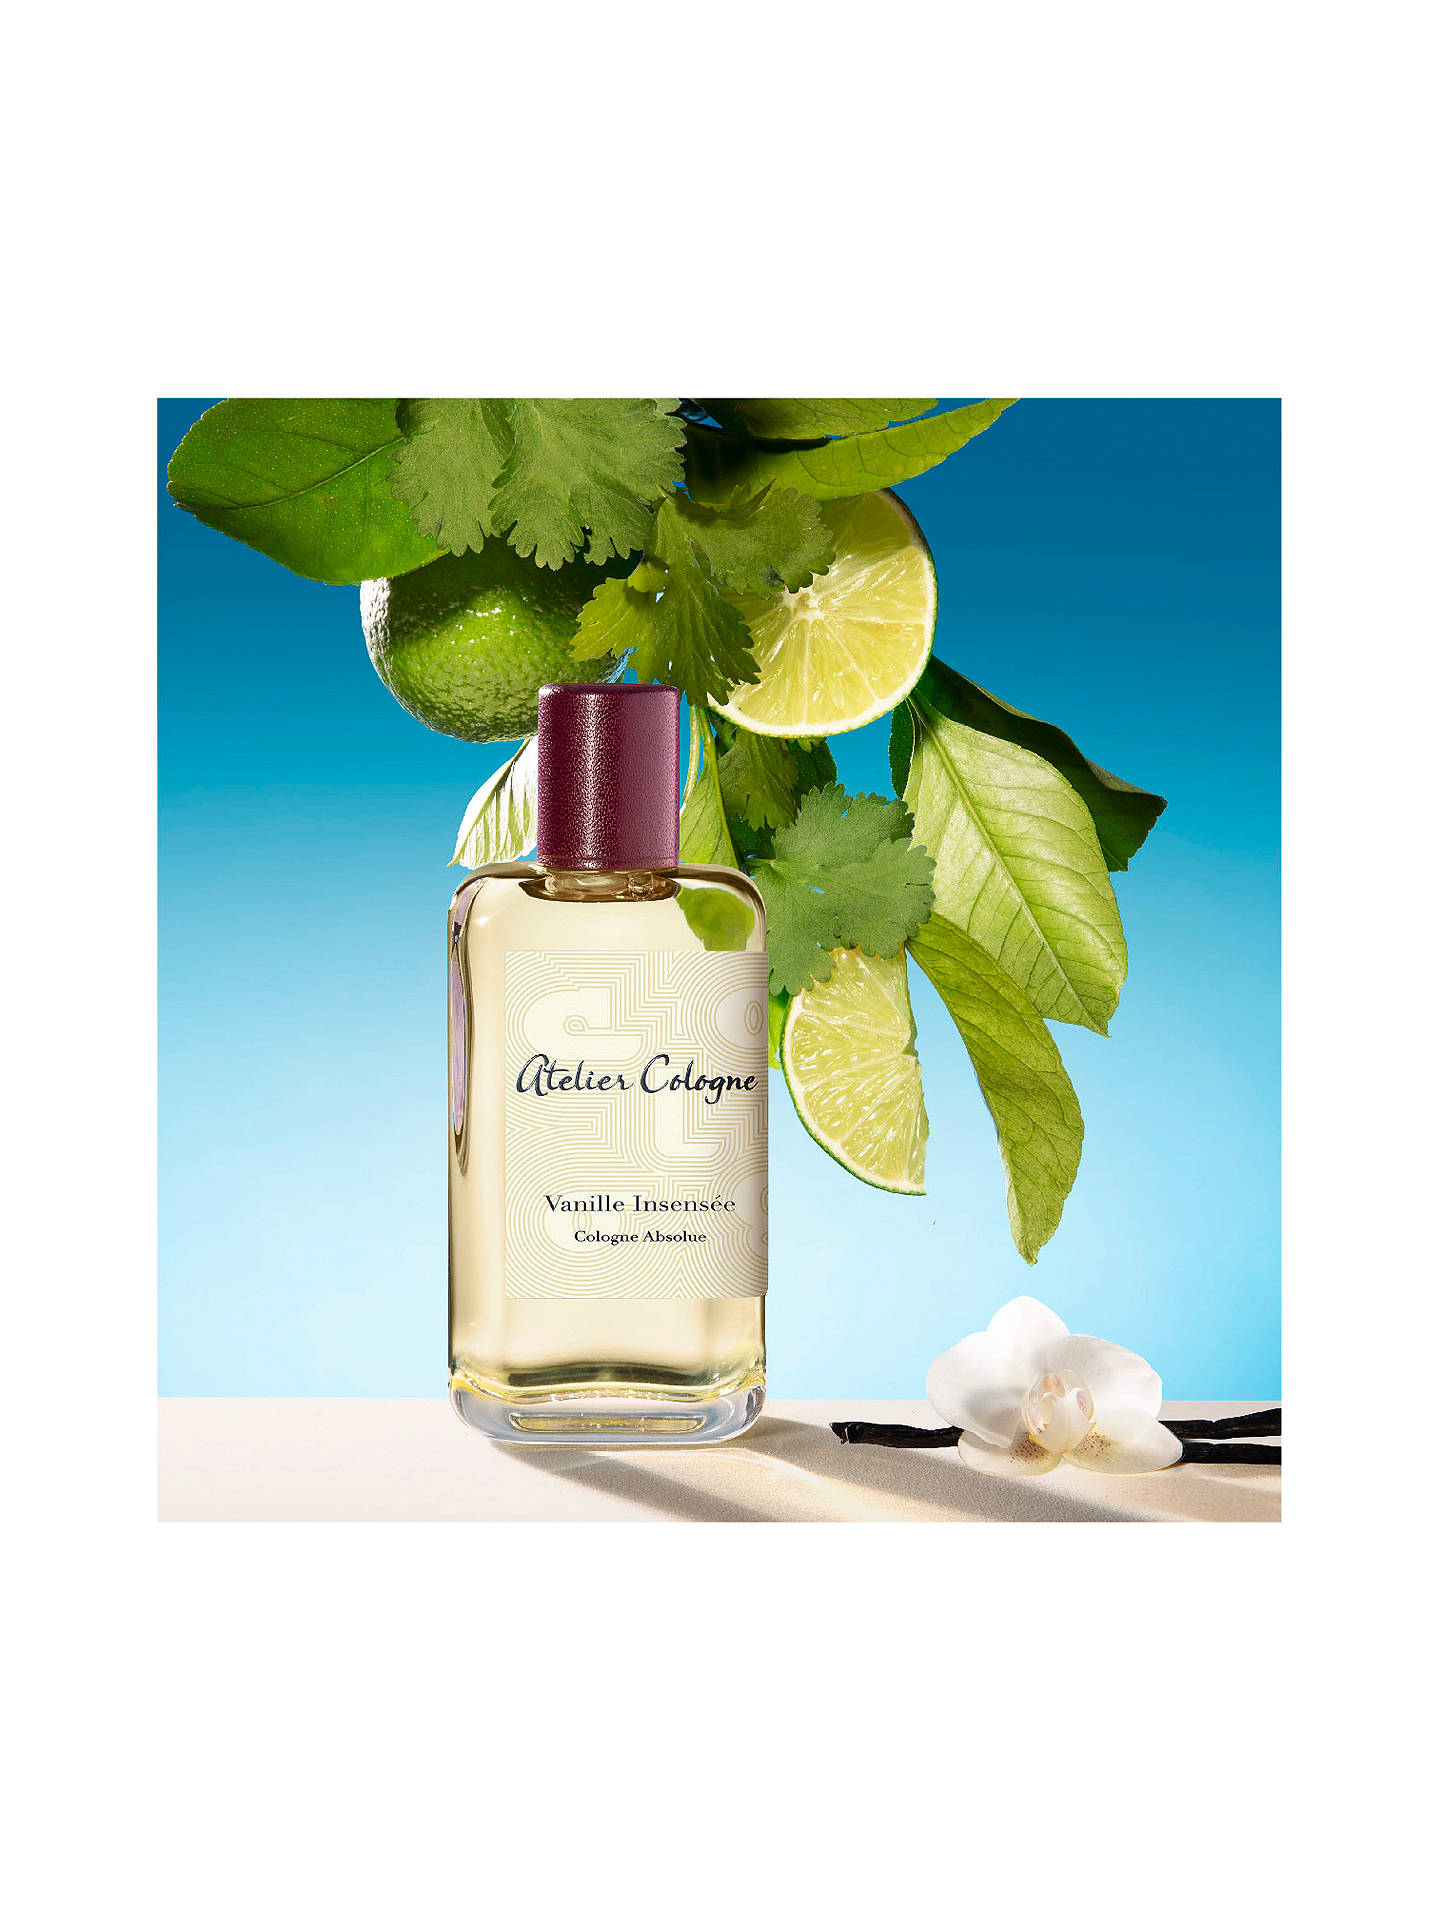 Buy Atelier Cologne Vanille Insensé Cologne Absolue, 100ml Online at johnlewis.com